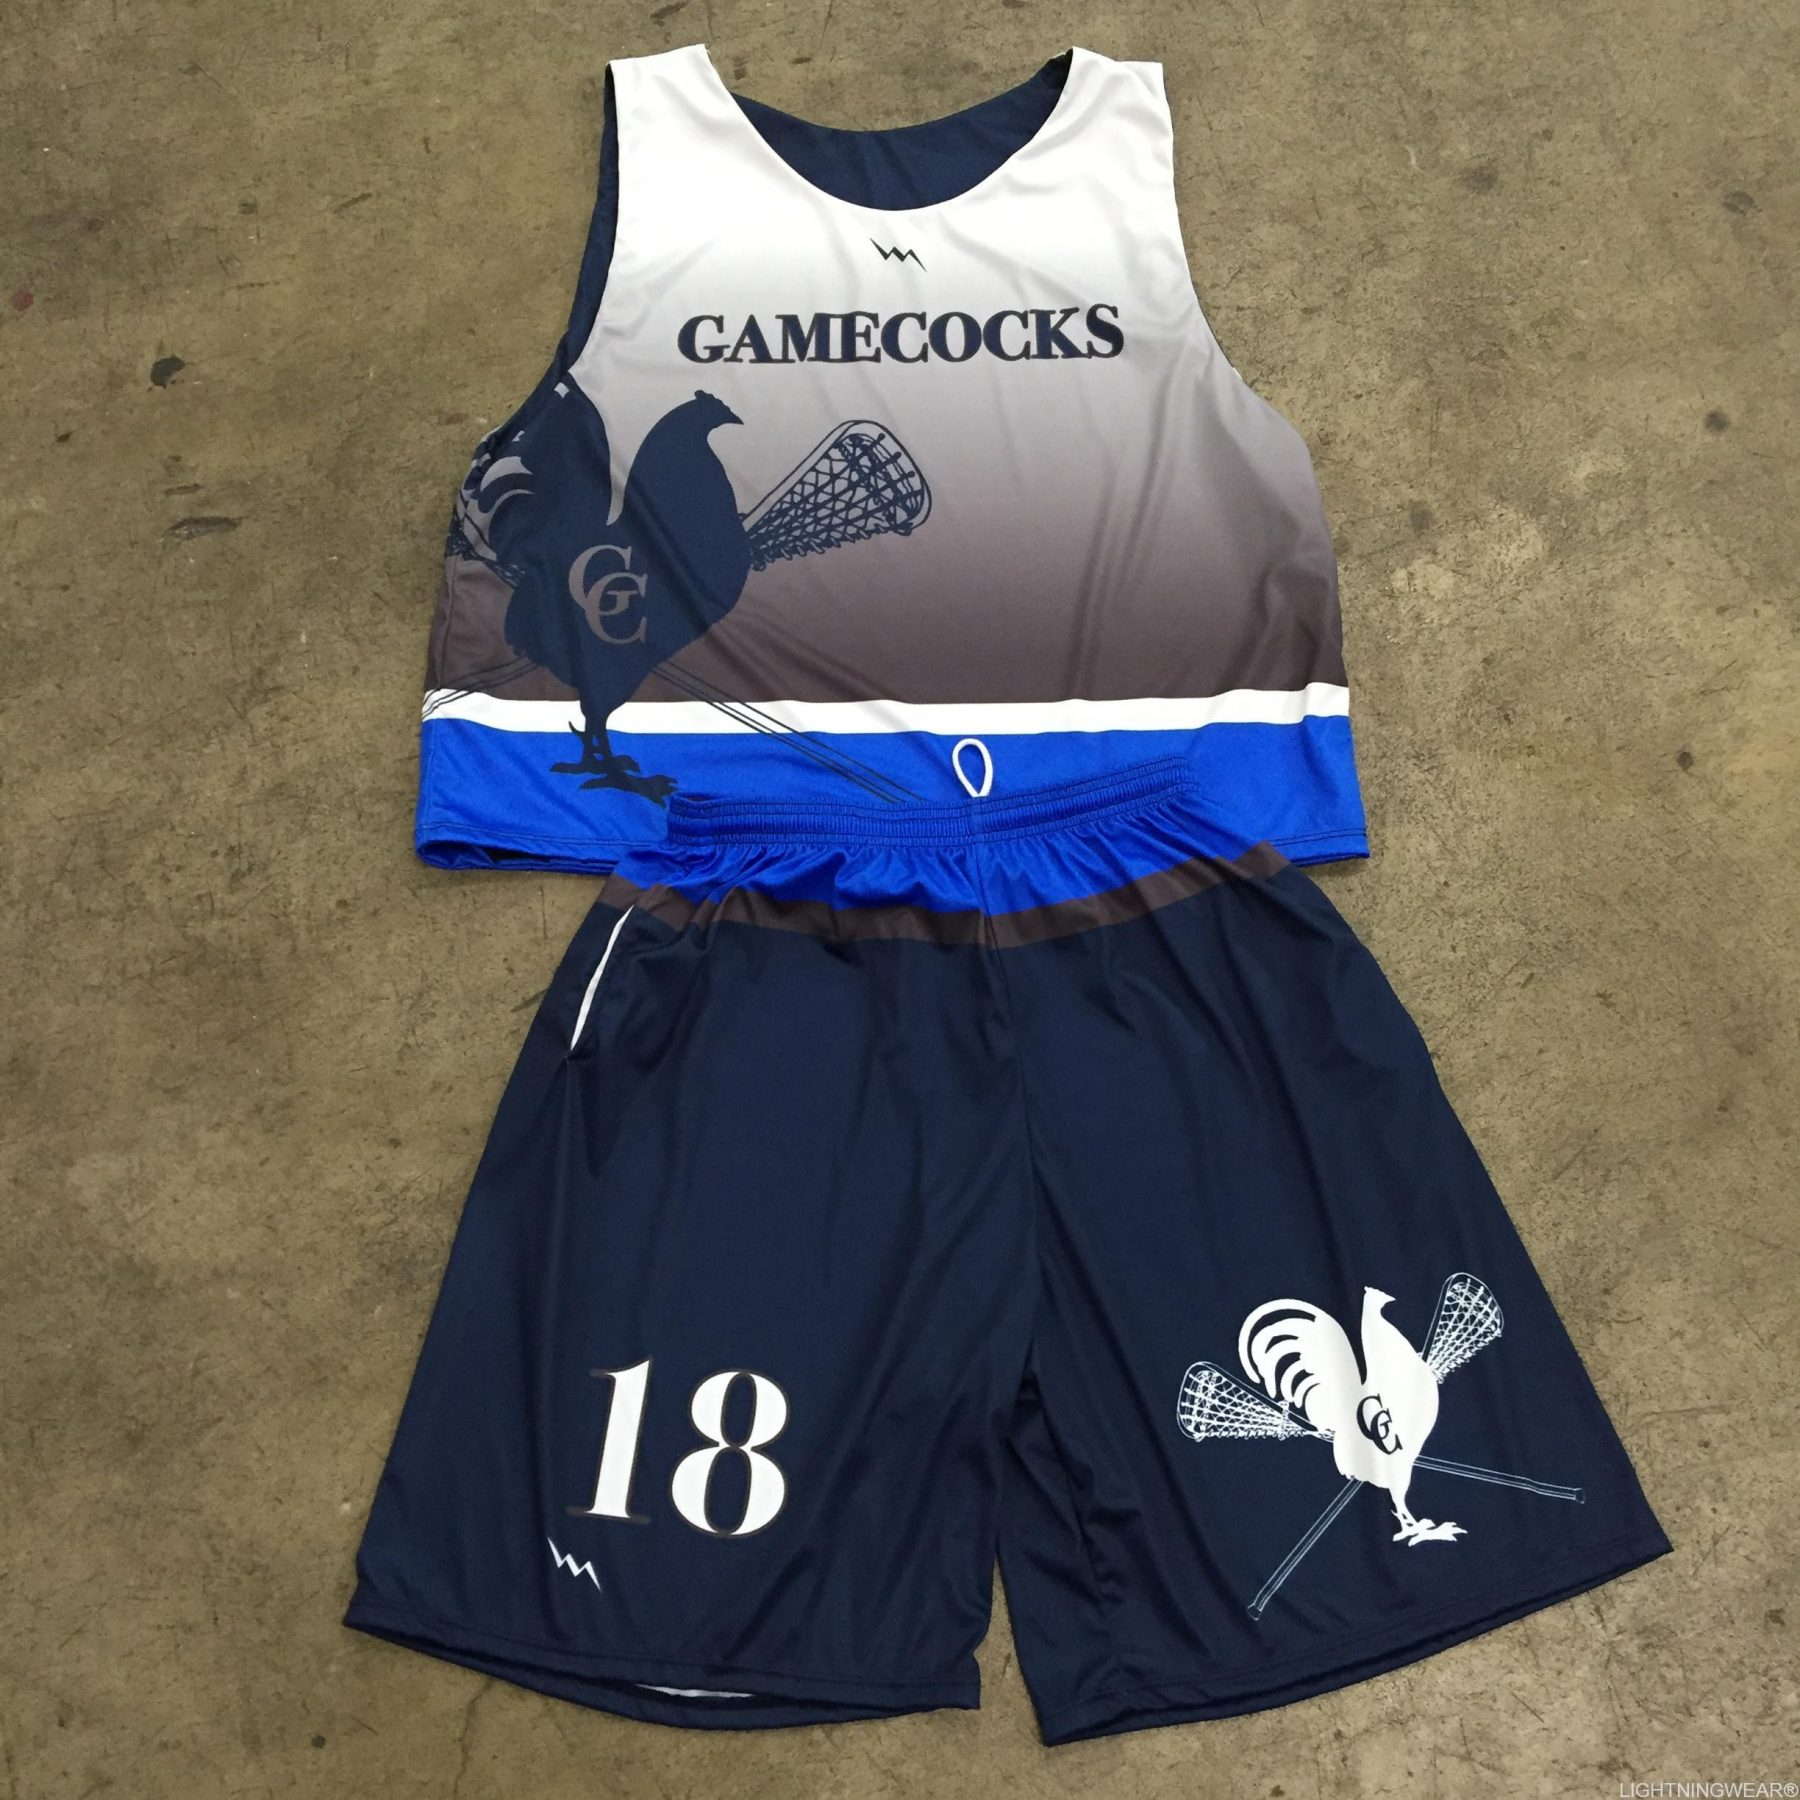 gamecocks lacrosse uniform